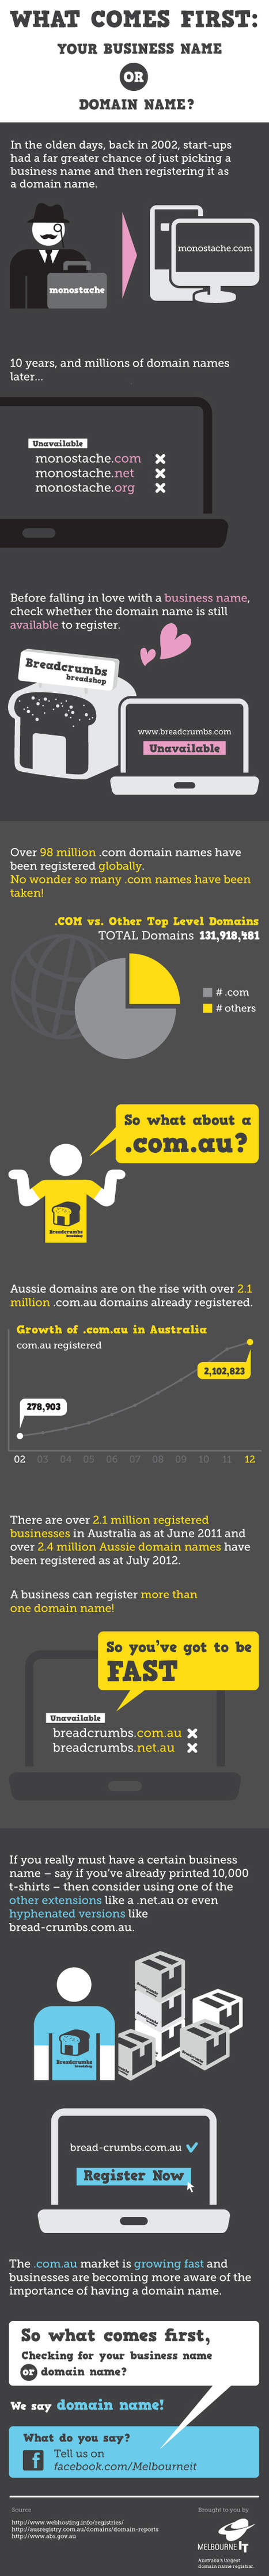 What comes first: Your business name or domain name? | Visual.ly | Social Media and Web Infographics hh | Scoop.it